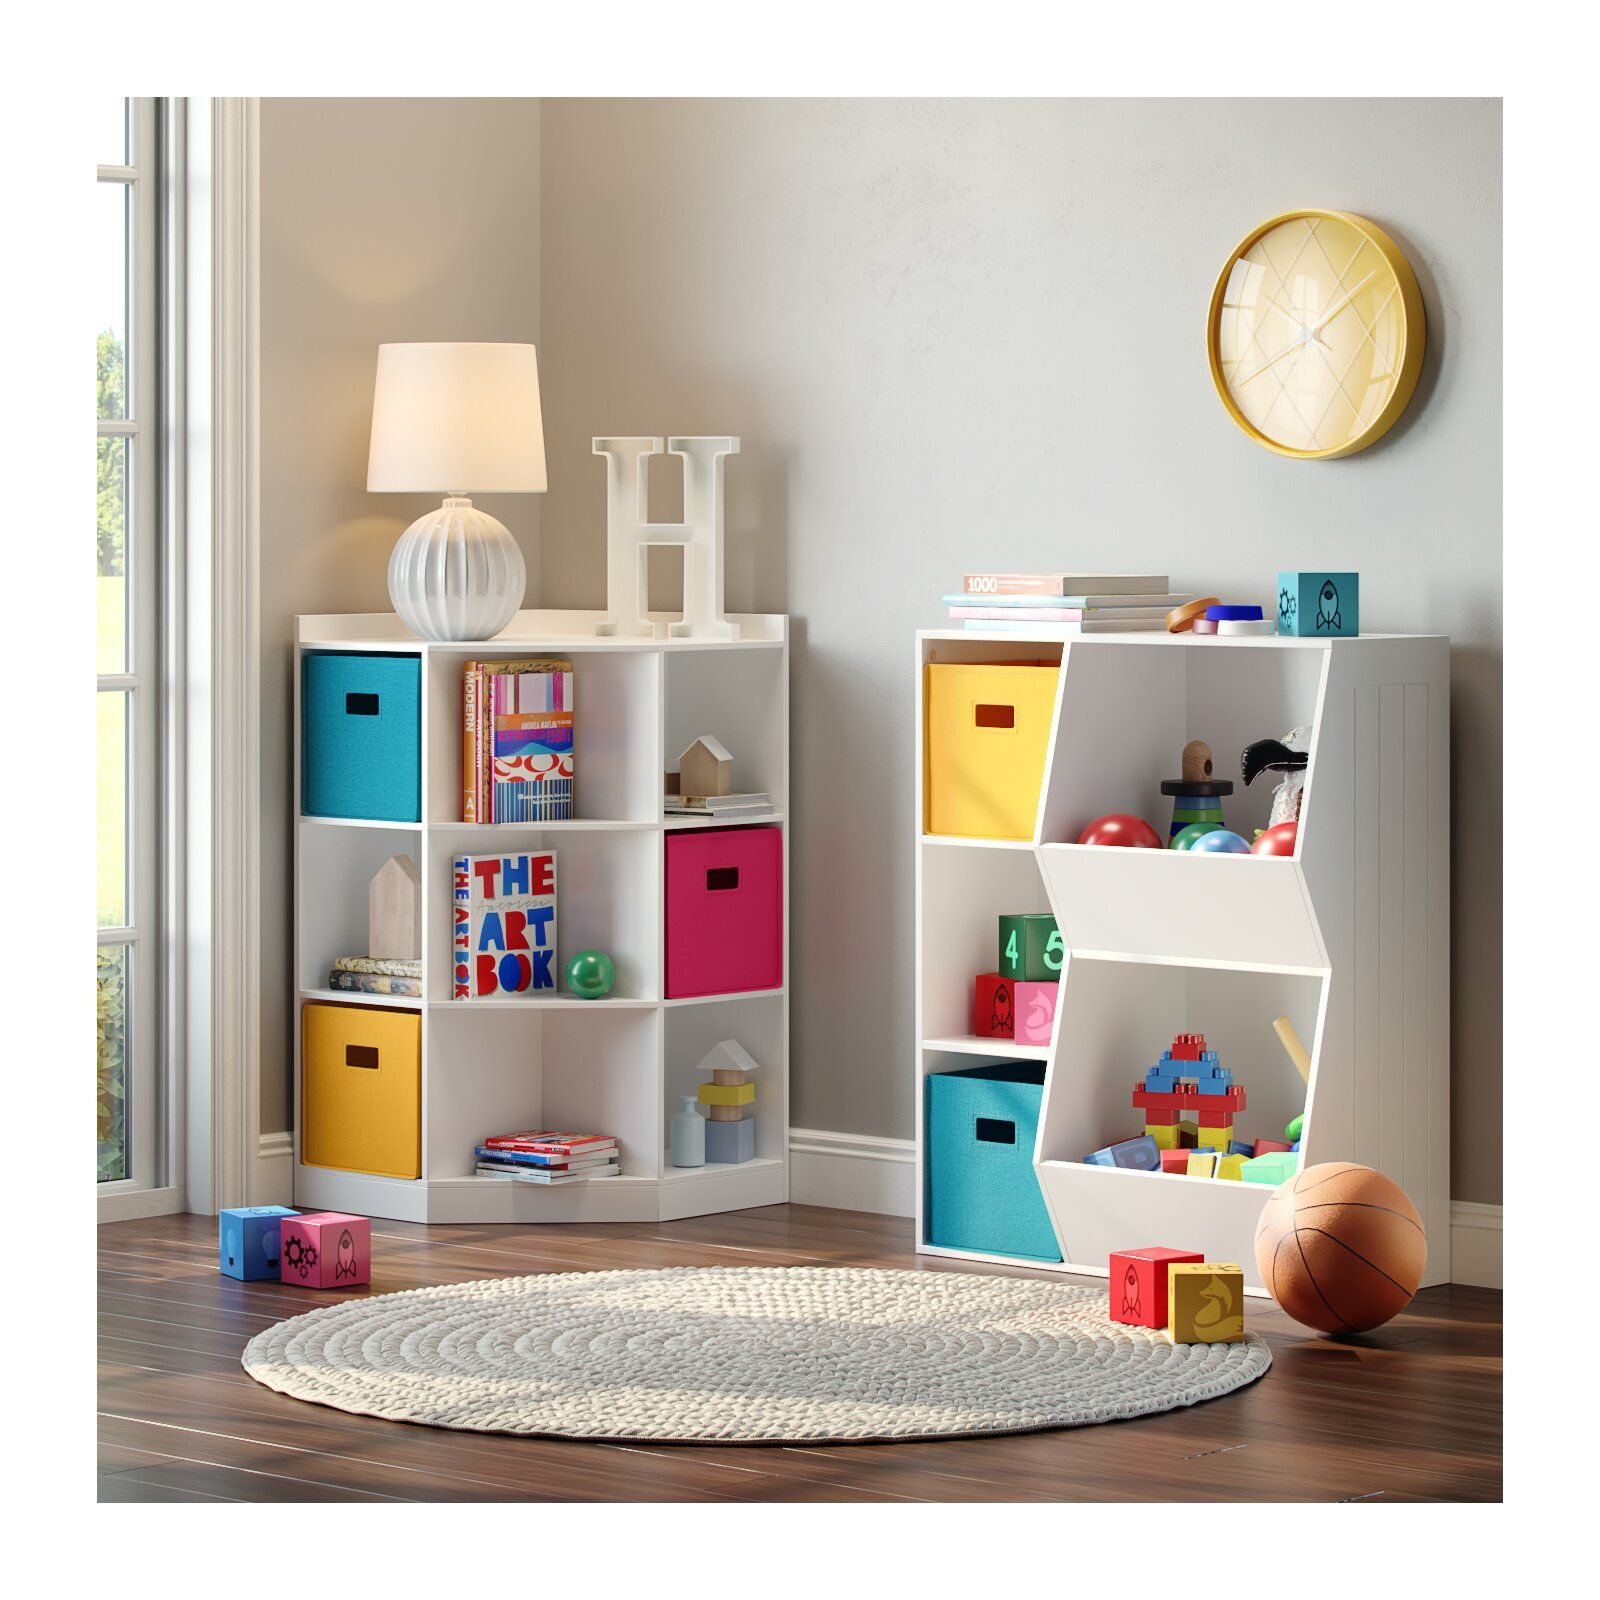 Riverridge 6 Cubby 3 Shelf Toy Organizer Colorful Kids Room Storage Kids Room Kid Room Decor